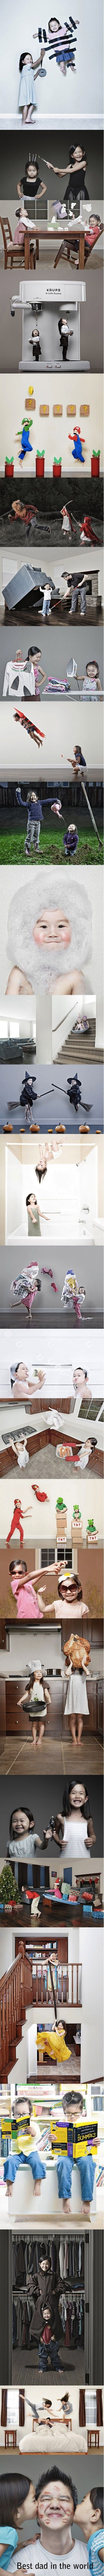 This is so cute and creative. I want to do this when I have kids